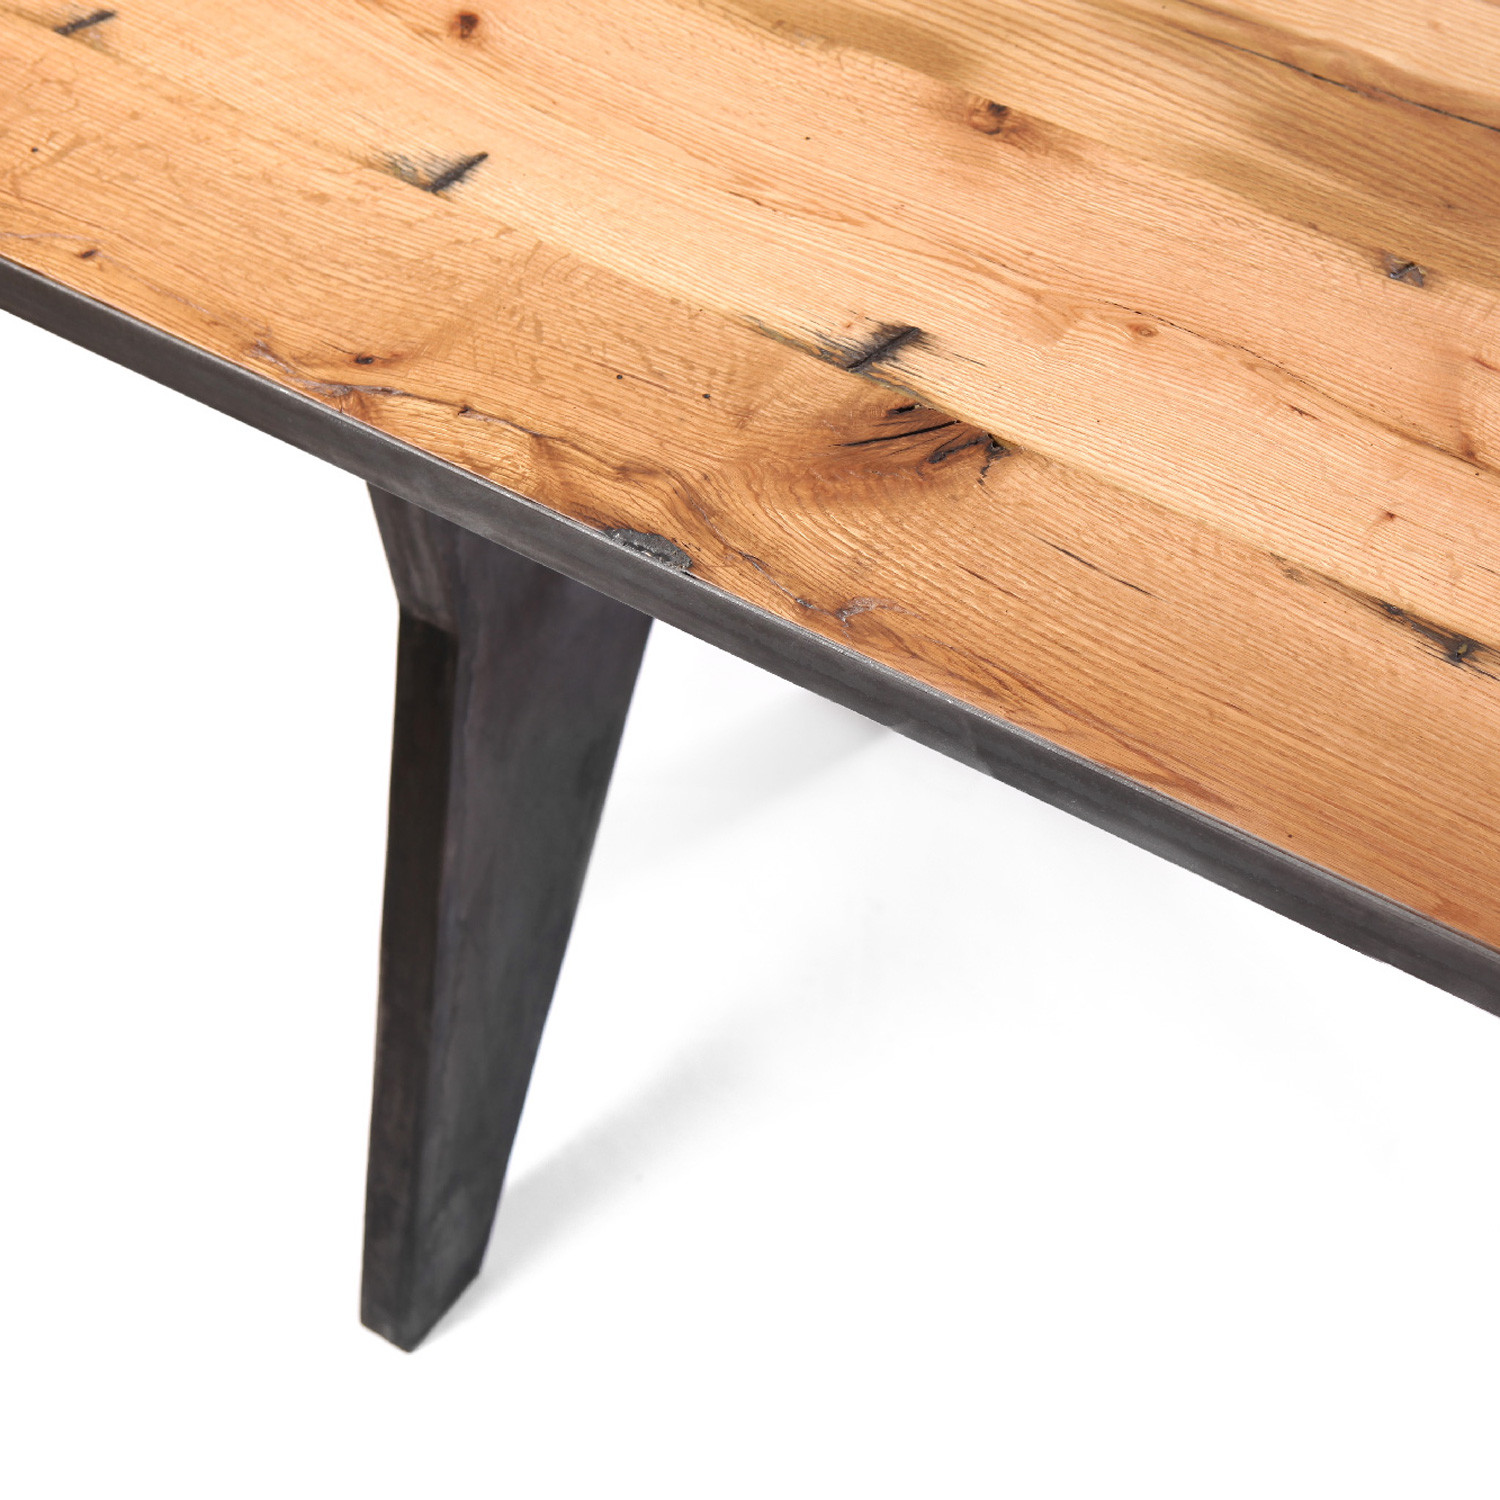 Bowlero by Rocky Mountain Table